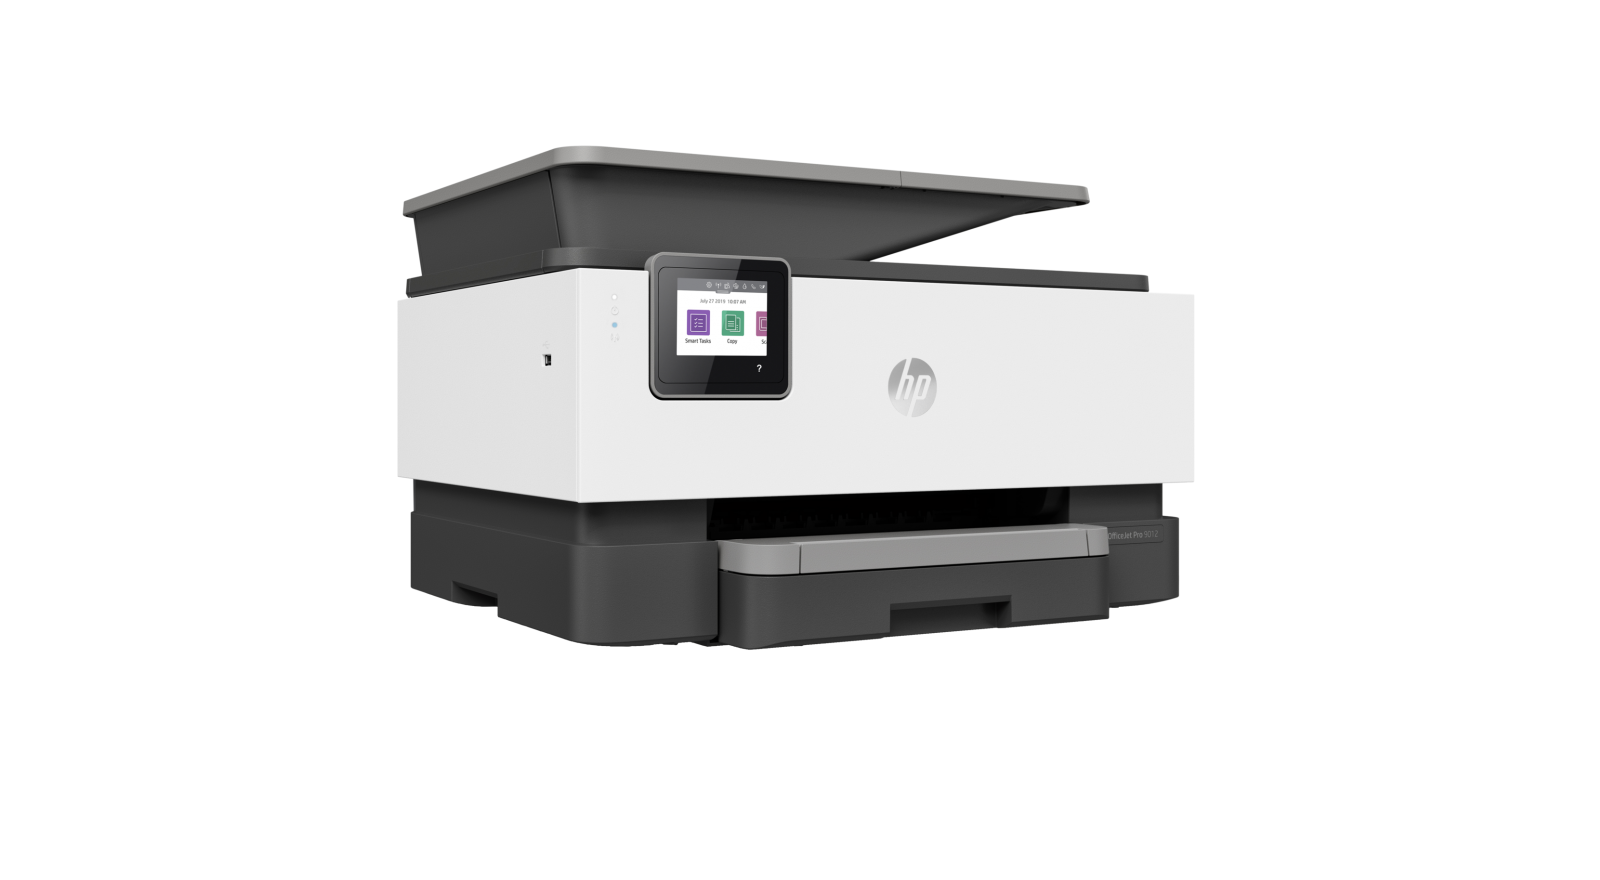 Home HP Printer